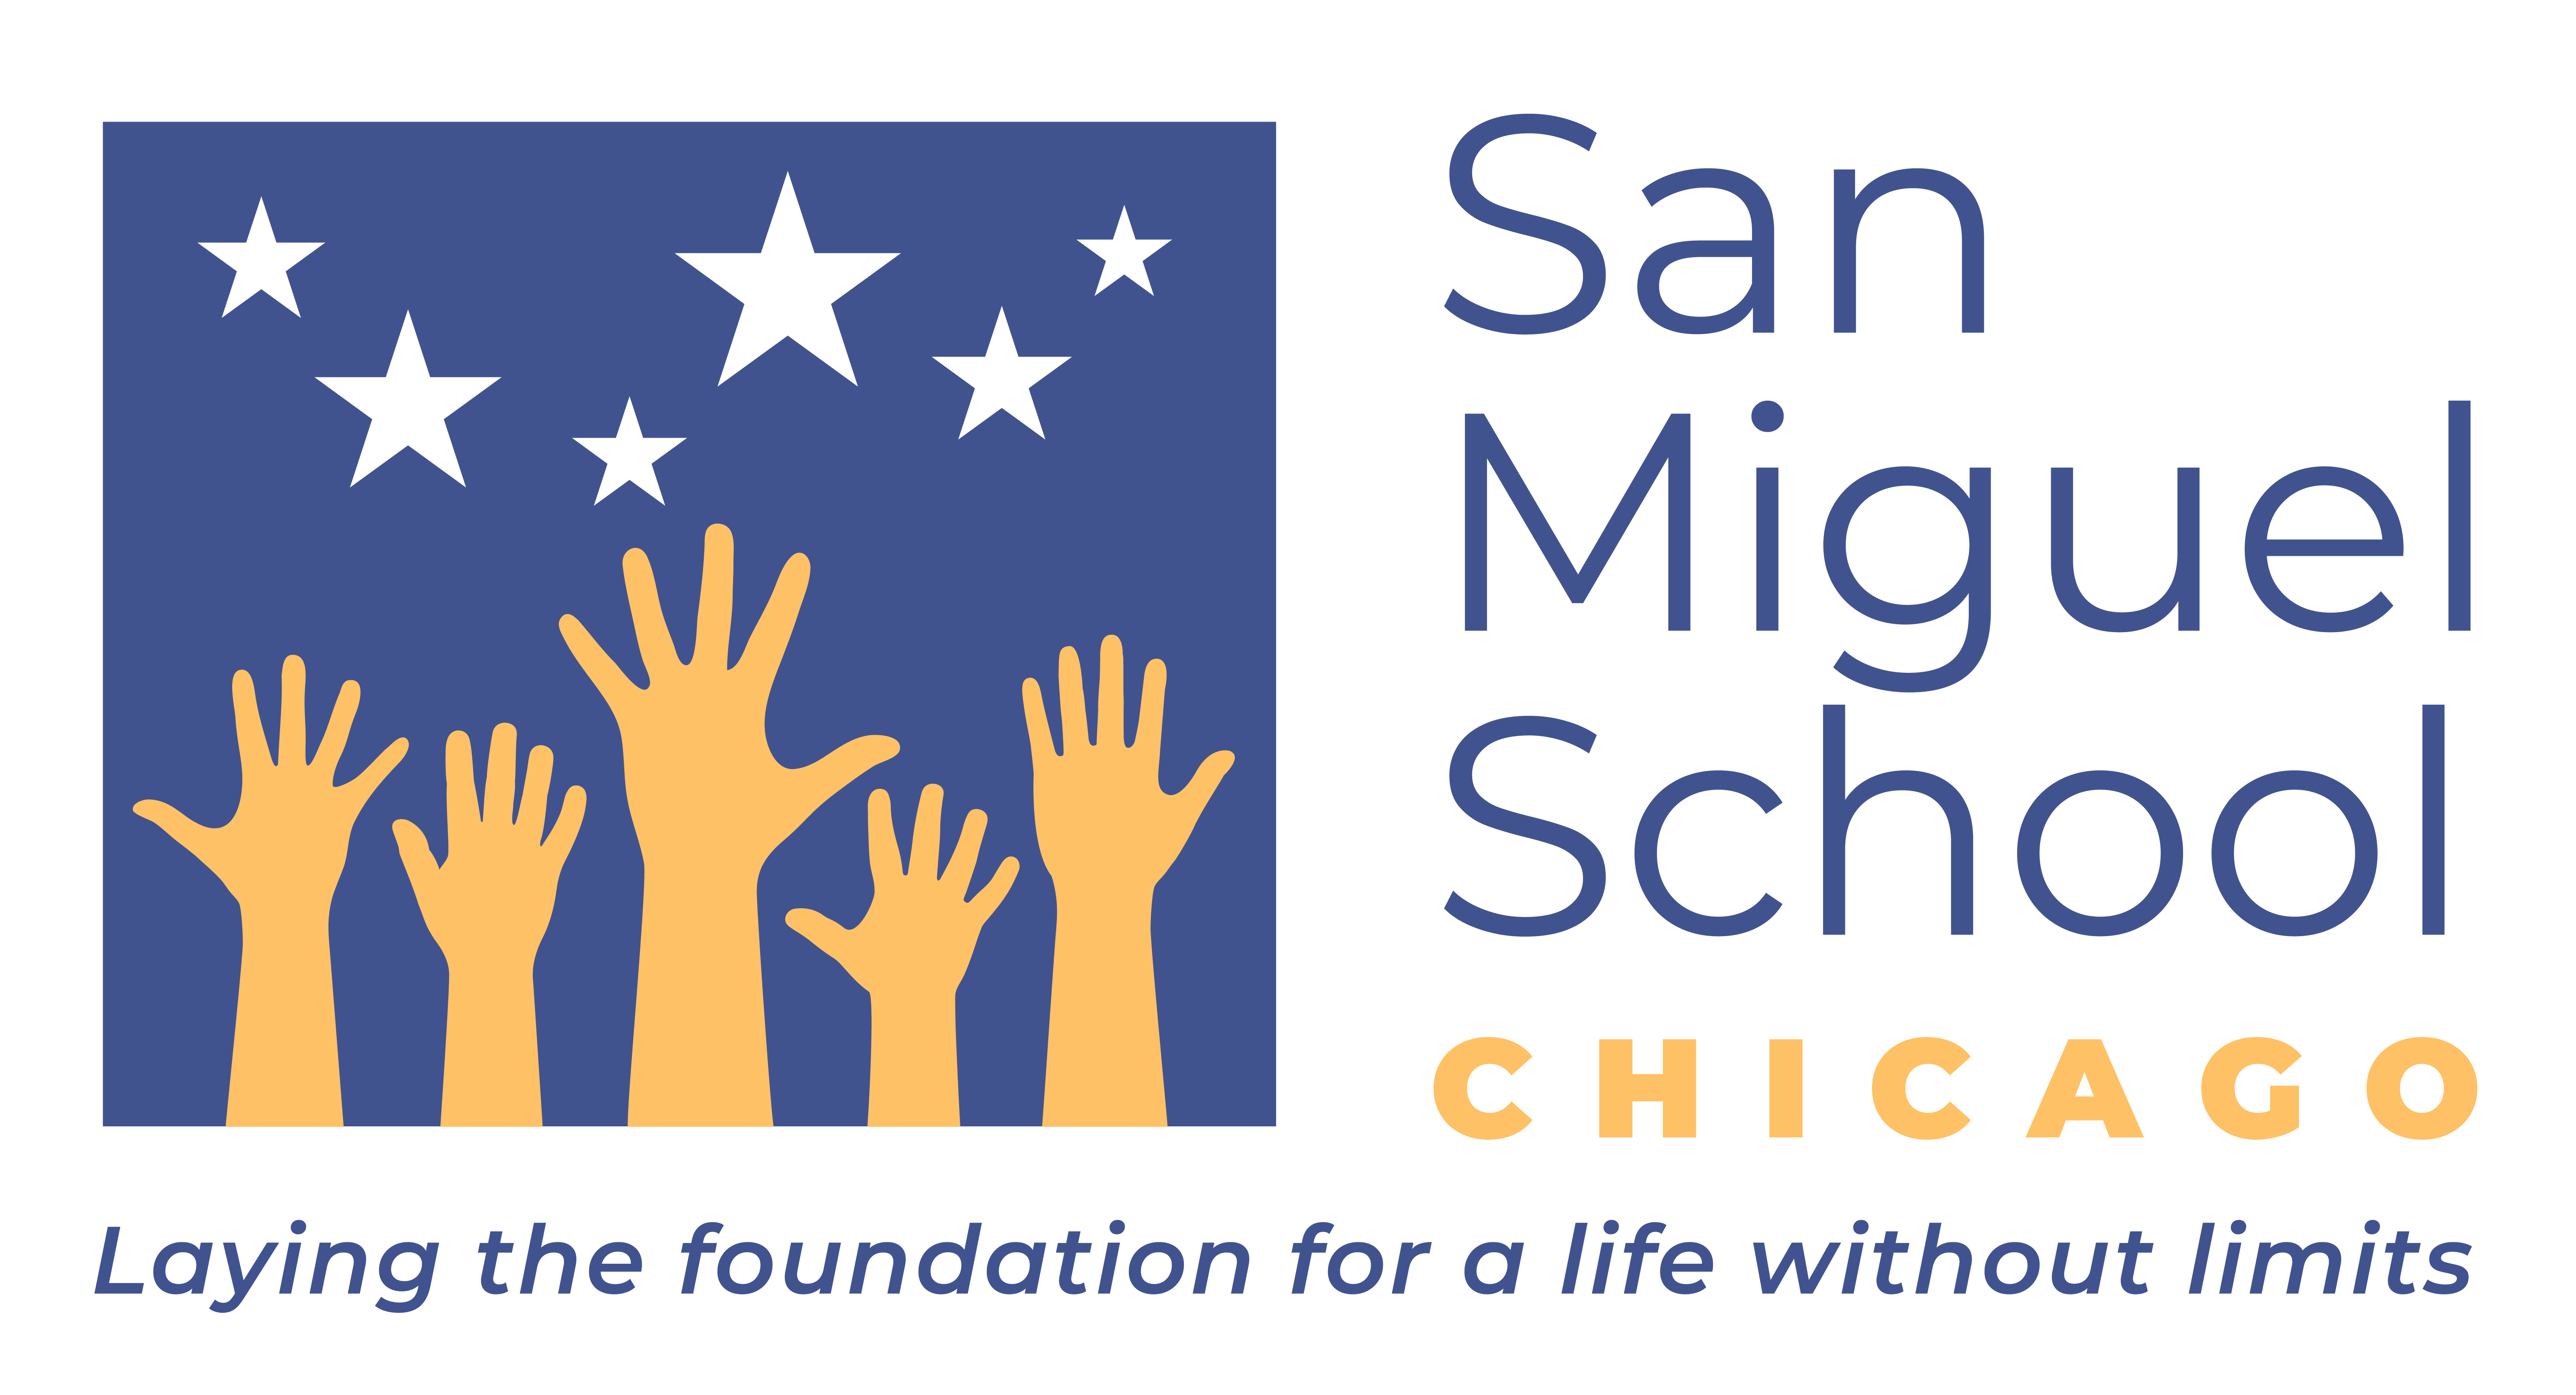 San Miguel School Chicago